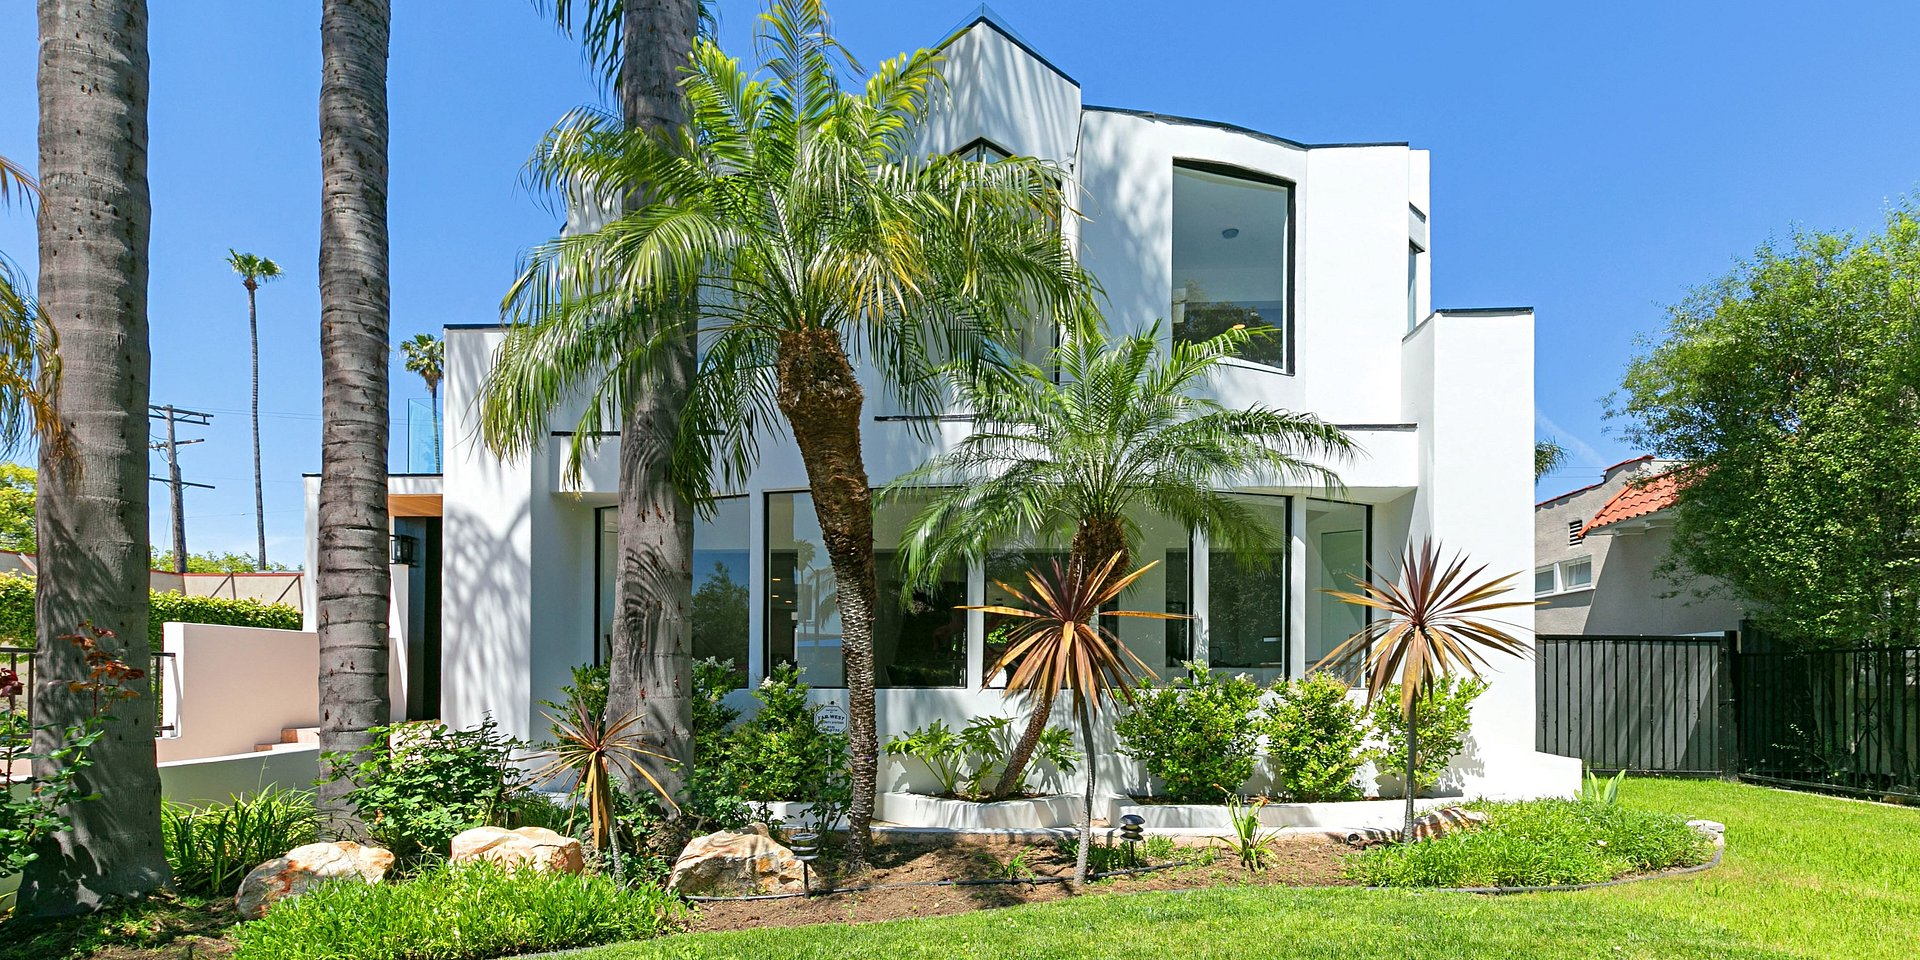 Coldwell Banker Residential Brokerage Lists Los Angeles Property for $2.495 Million